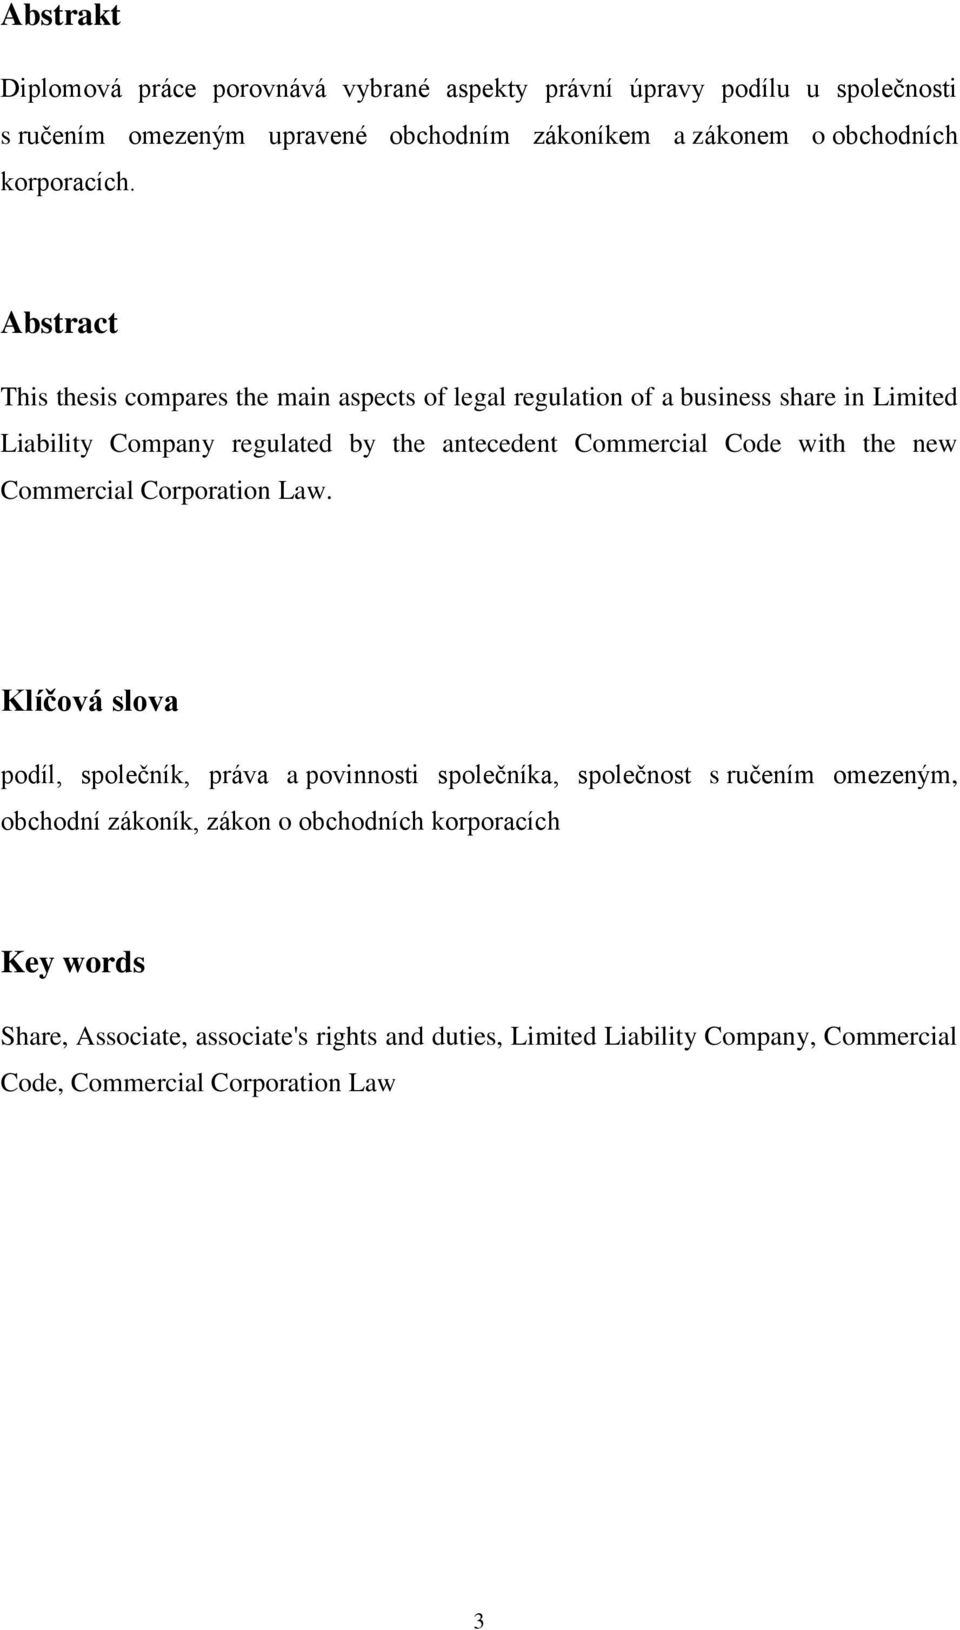 Abstract This thesis compares the main aspects of legal regulation of a business share in Limited Liability Company regulated by the antecedent Commercial Code